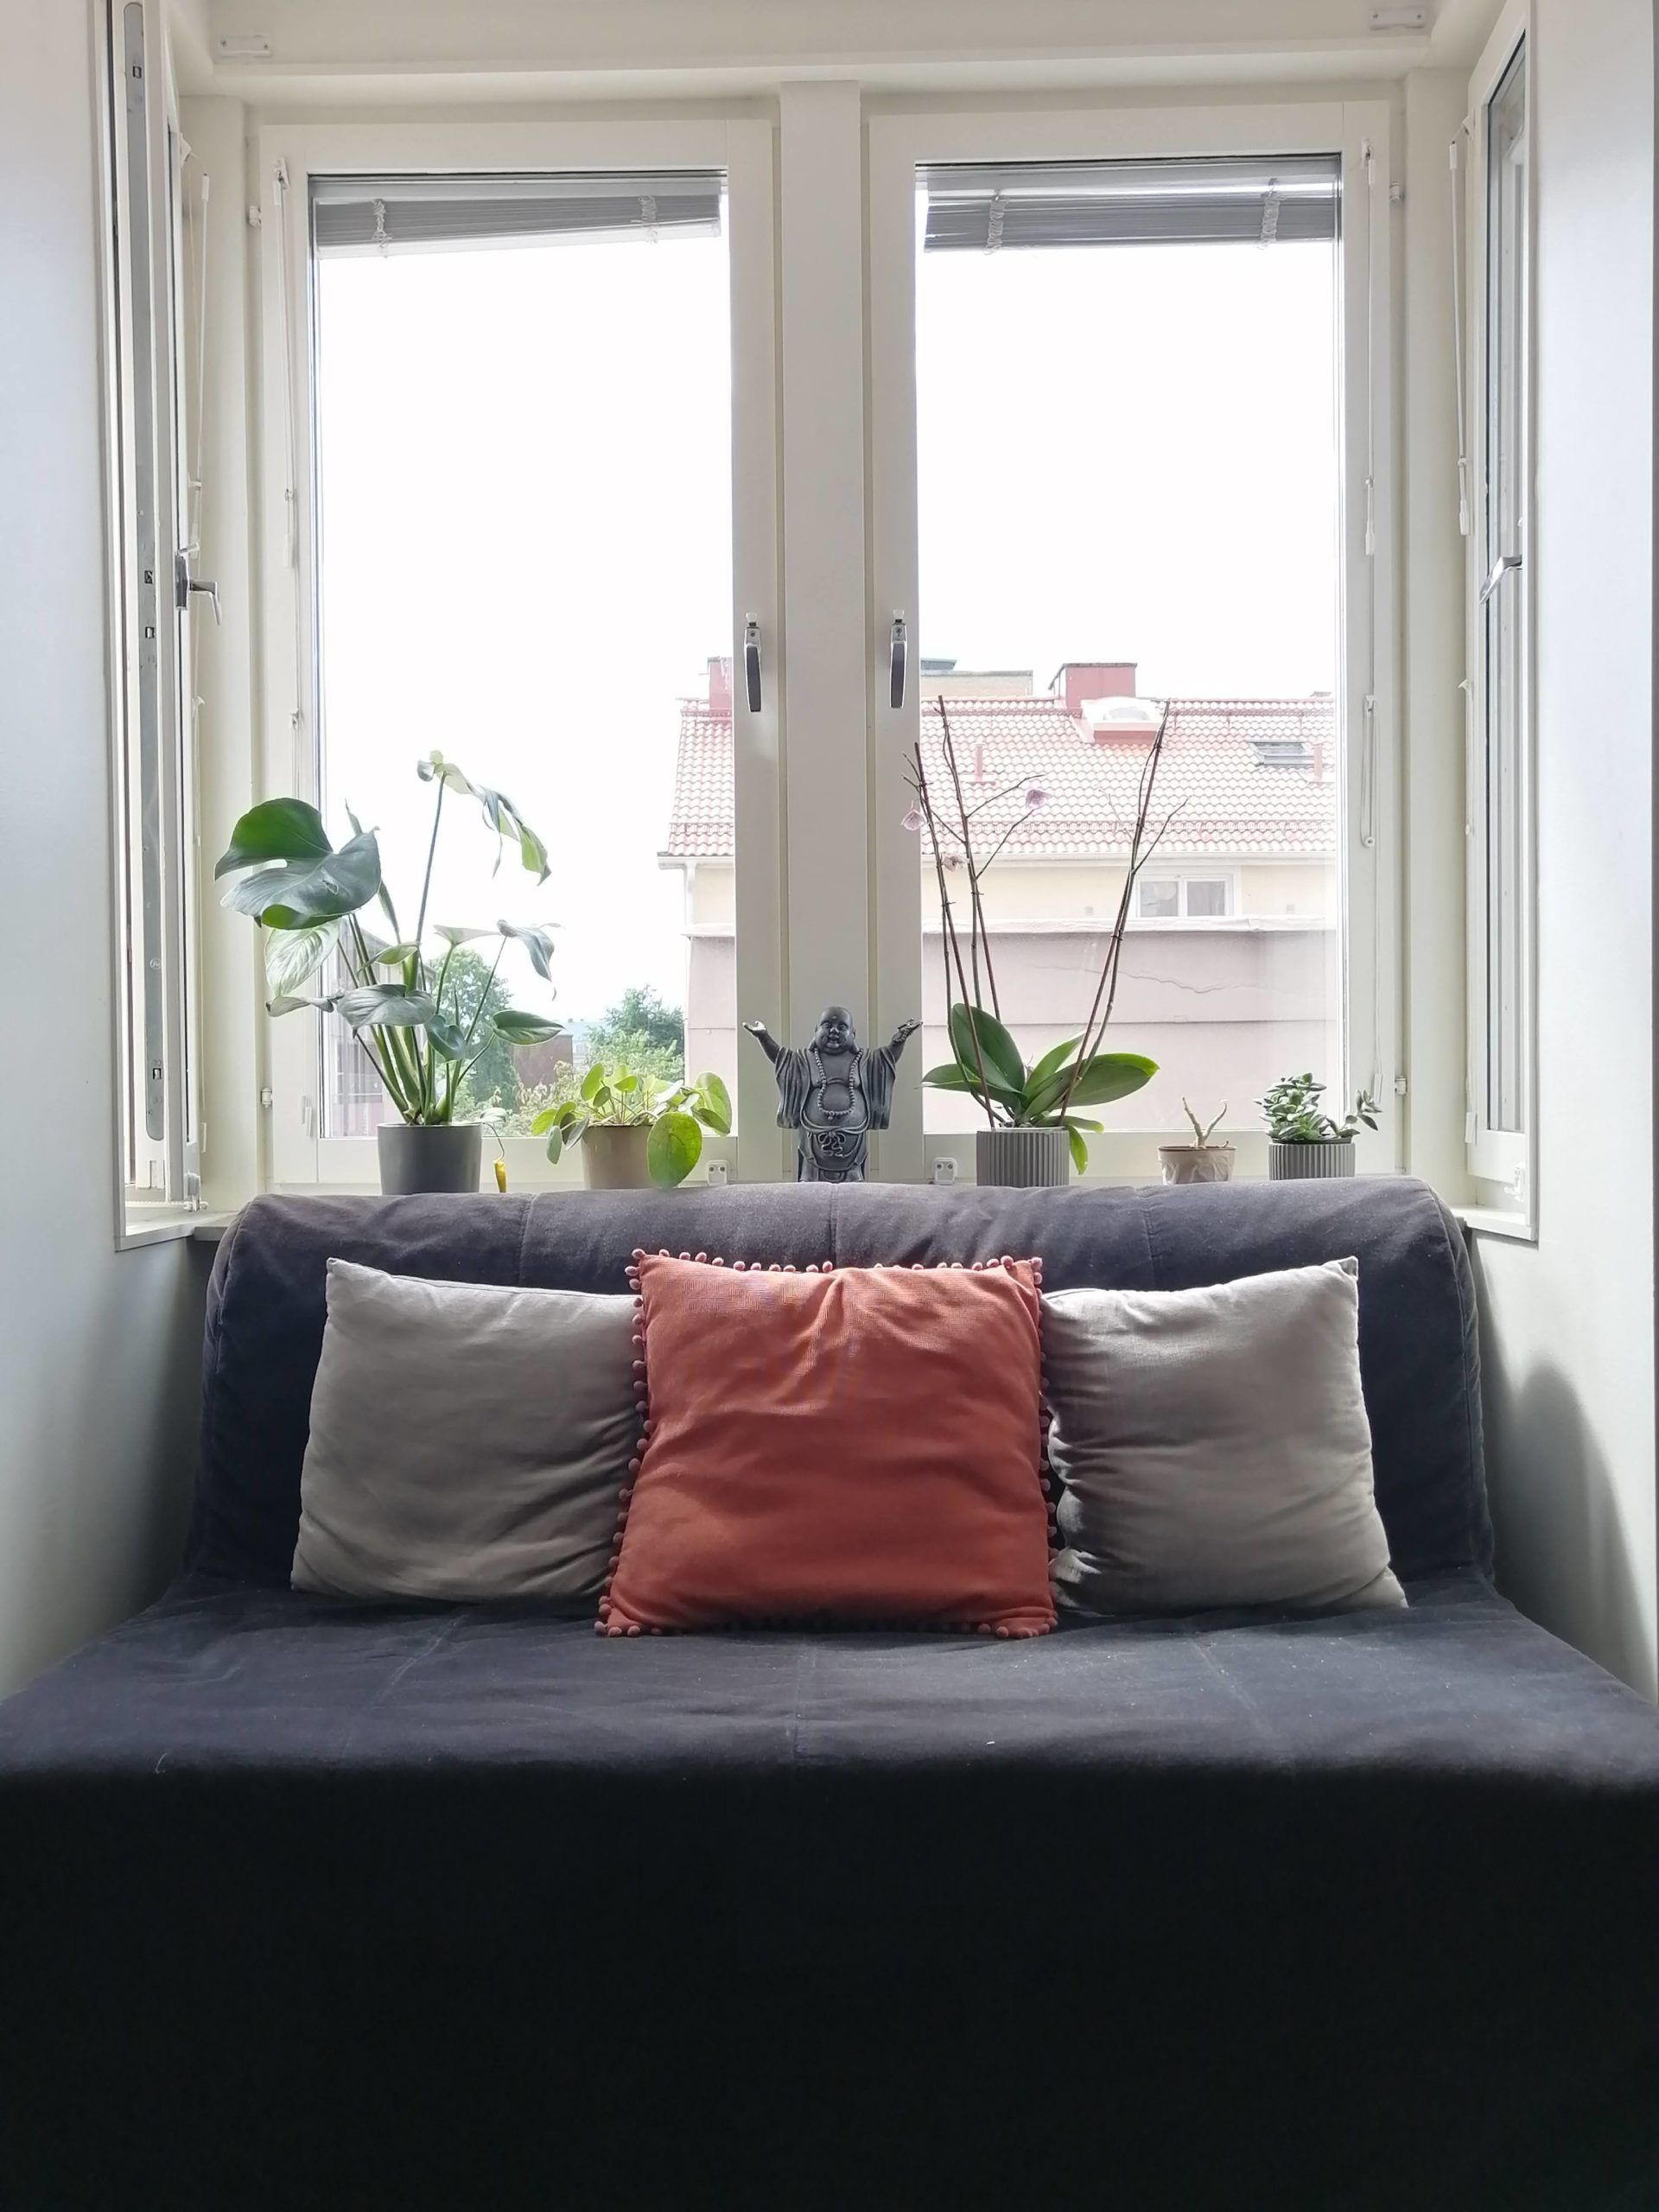 A sofa with cushions and plants on the windowsill behind it